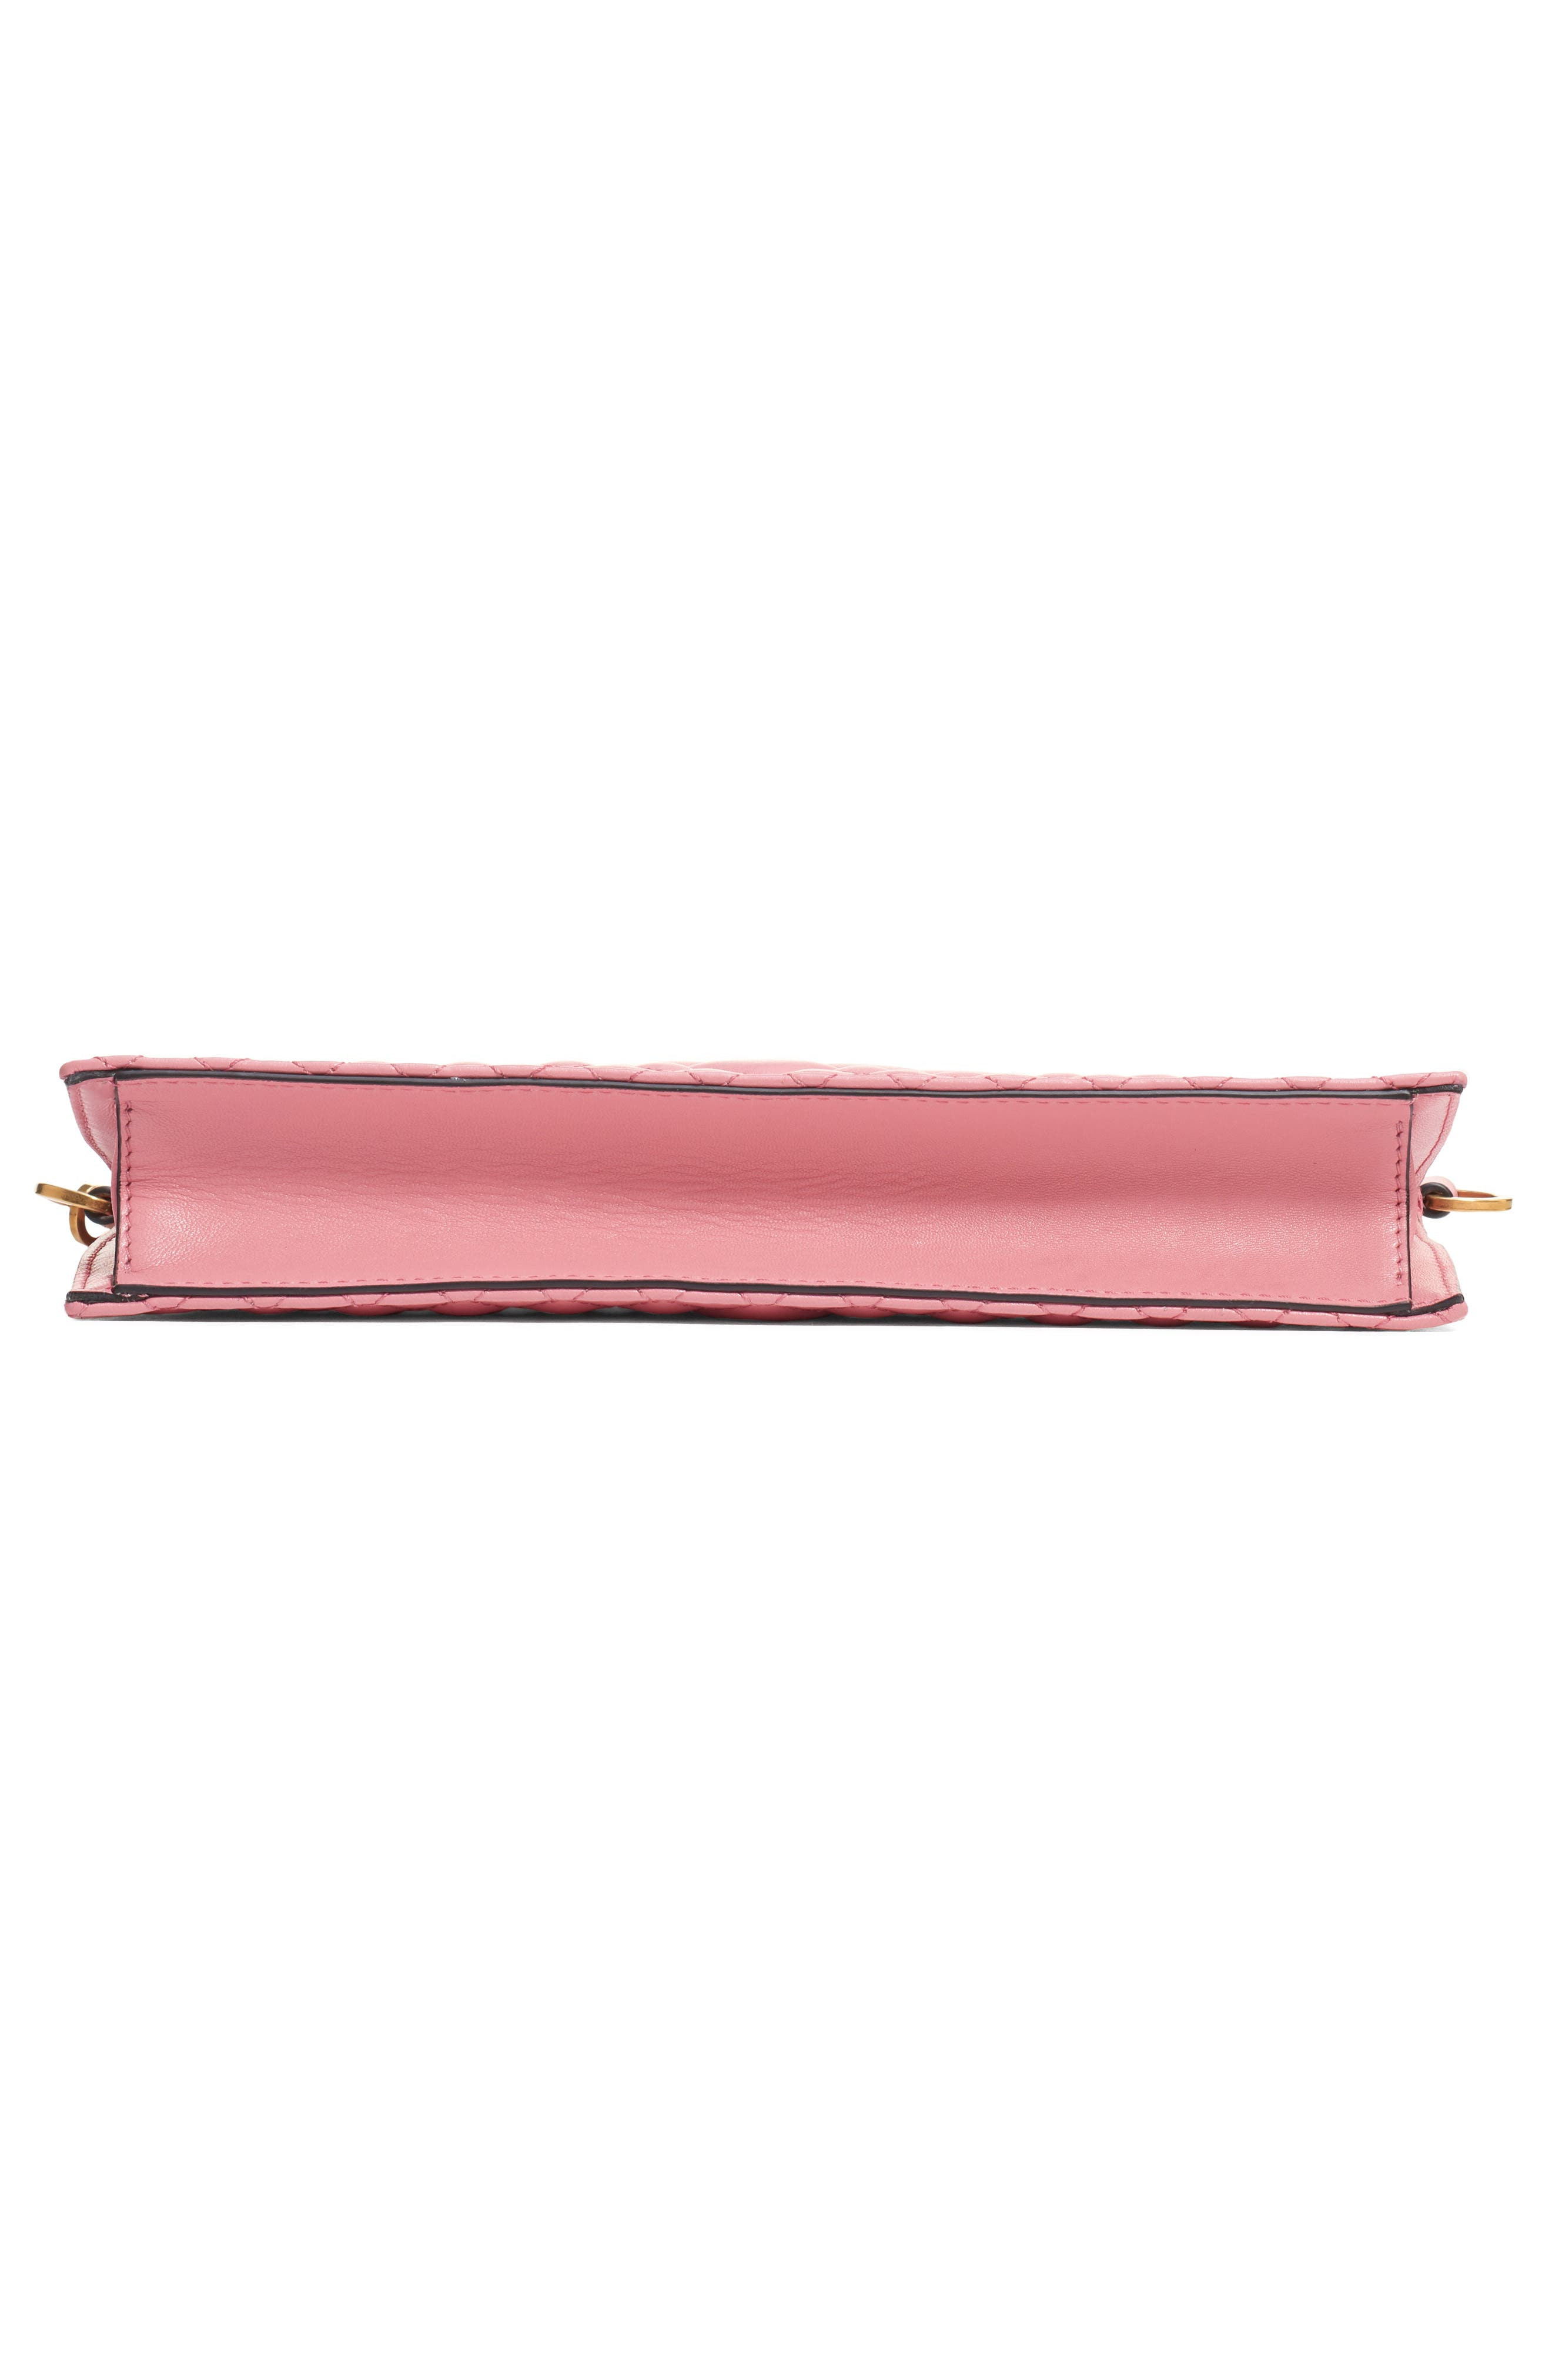 VERSACE, Tribute Icon Quilted Leather Pouch, Alternate thumbnail 6, color, SHELL PINK/ TRIBUTE GOLD